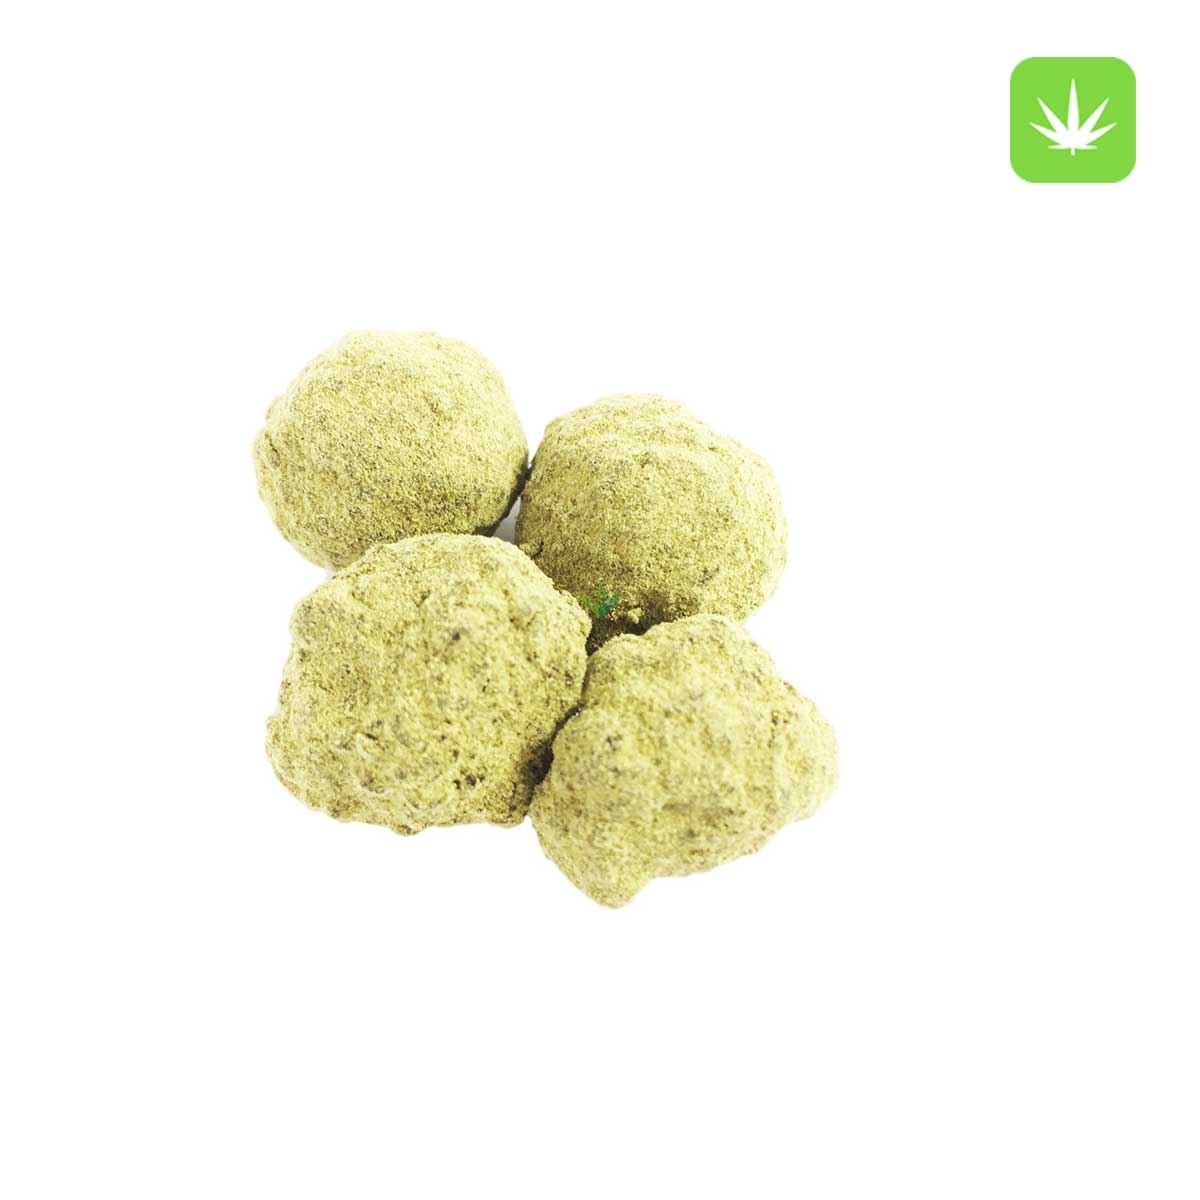 Moon Rocks Cannabis Avenue